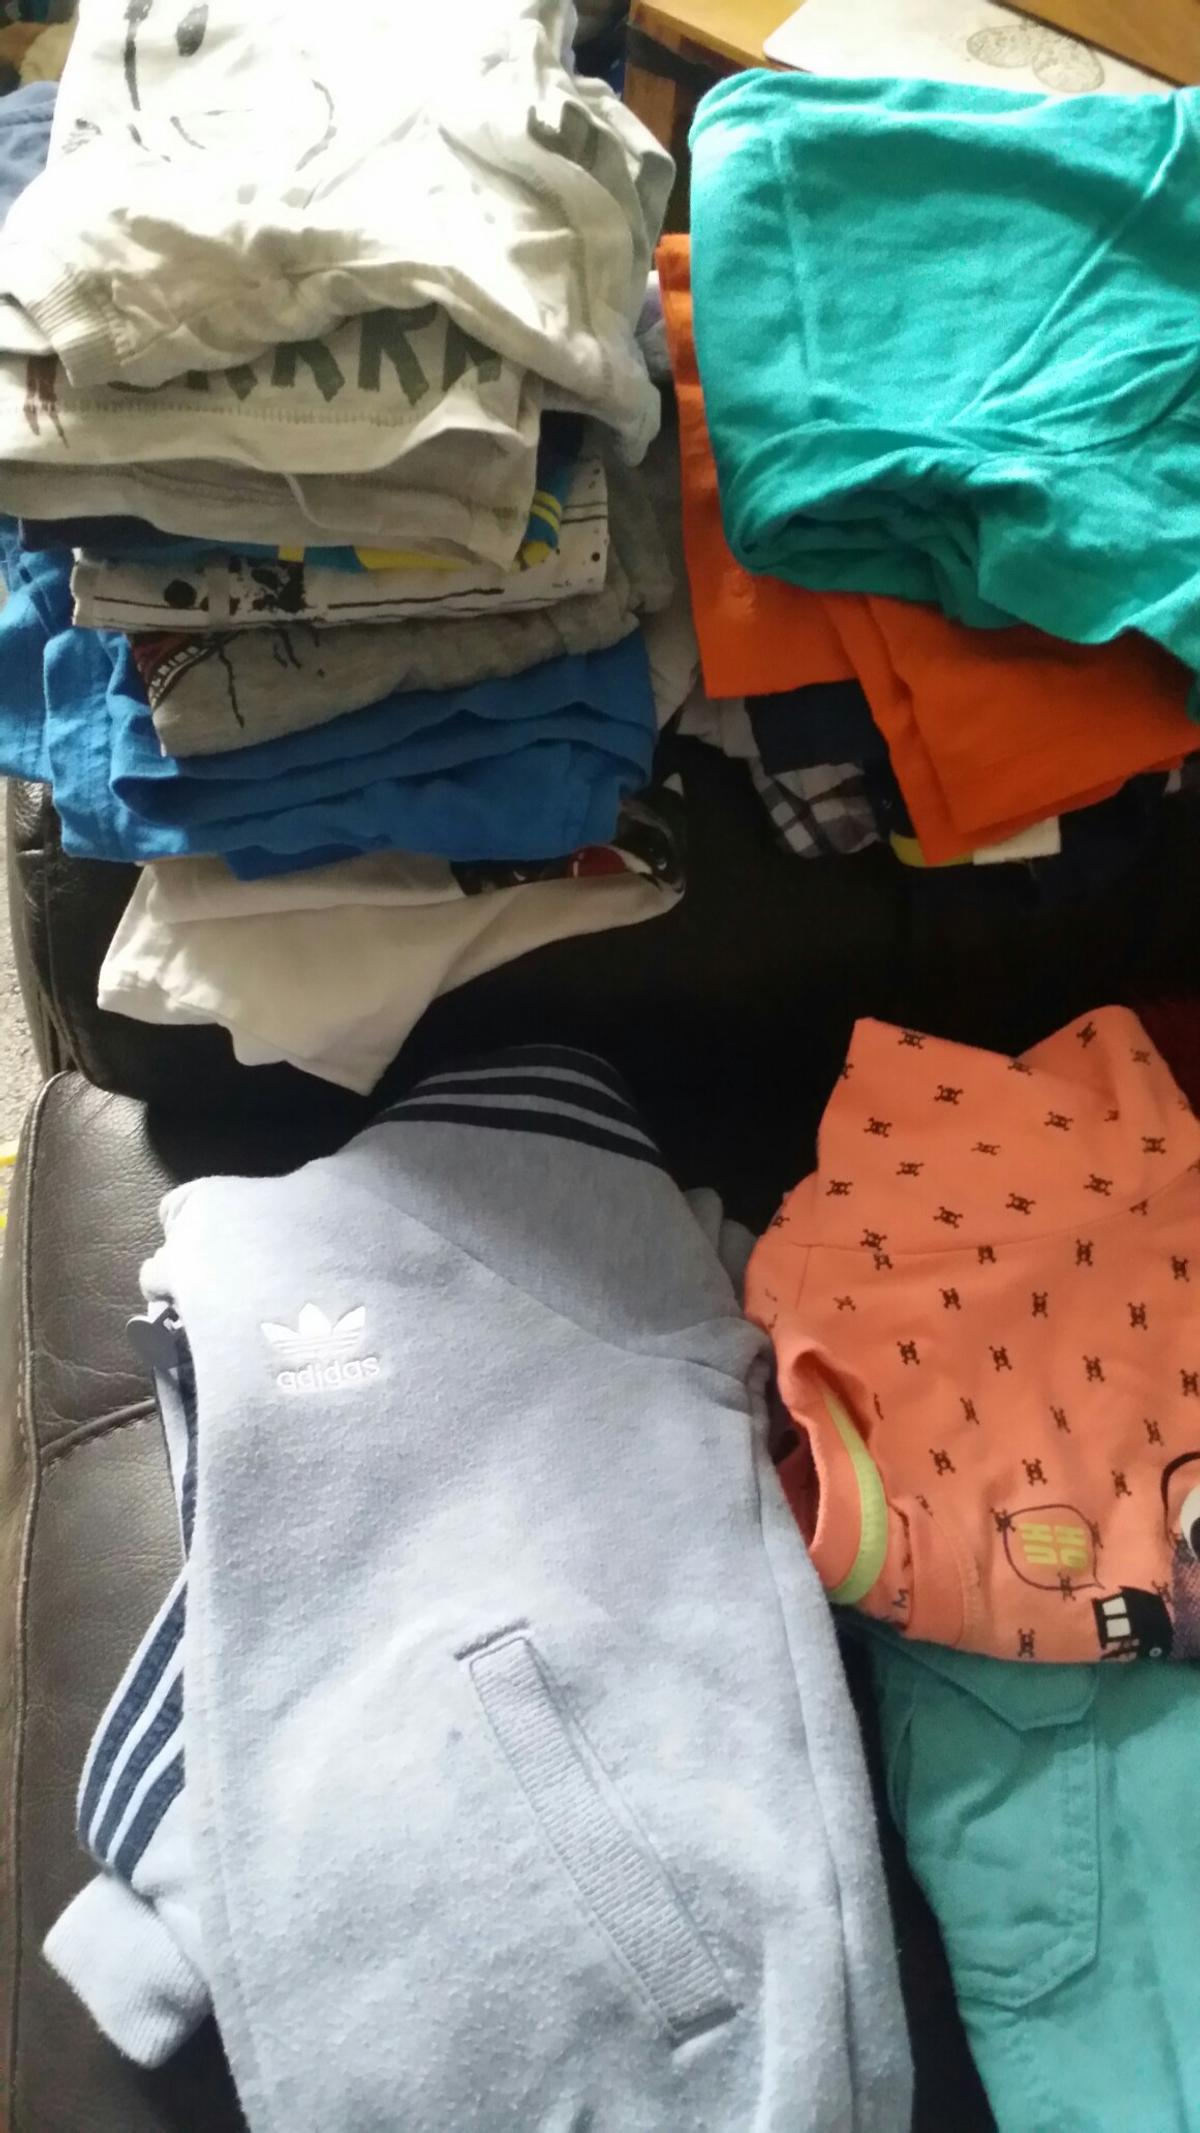 28f0e16b59f71 Boys clothes age 3.4 in WV14 Wolverhampton for £20.00 for sale - Shpock